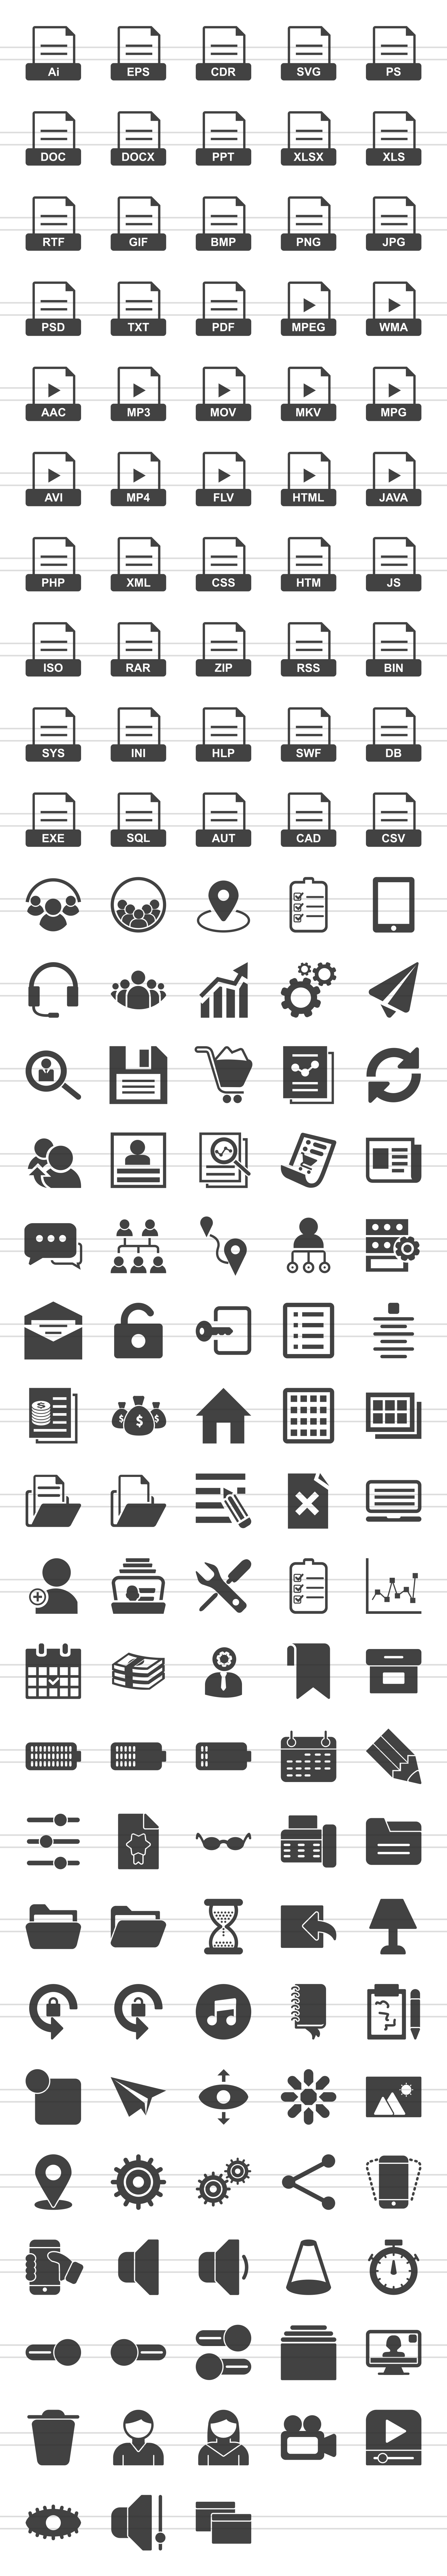 148 Files & Folders Glyph Icons example image 2